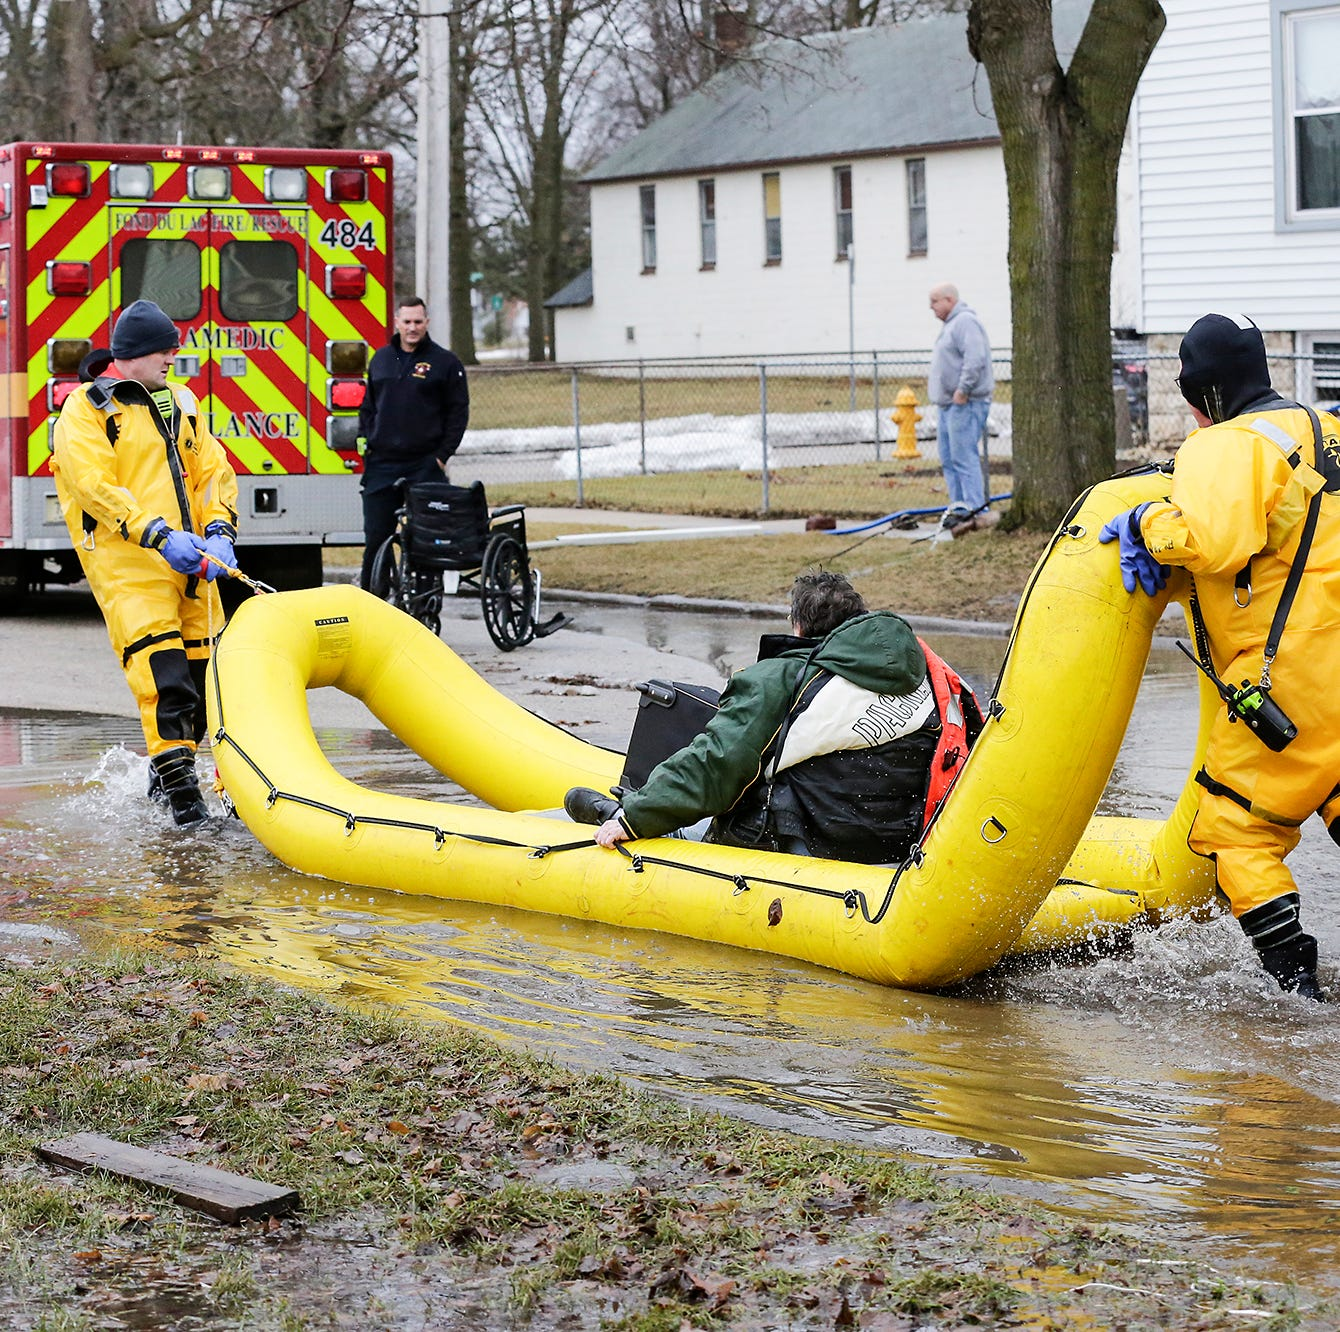 Fond du Lac flood stories: One woman rides bus to safety, another tries a laundry basket